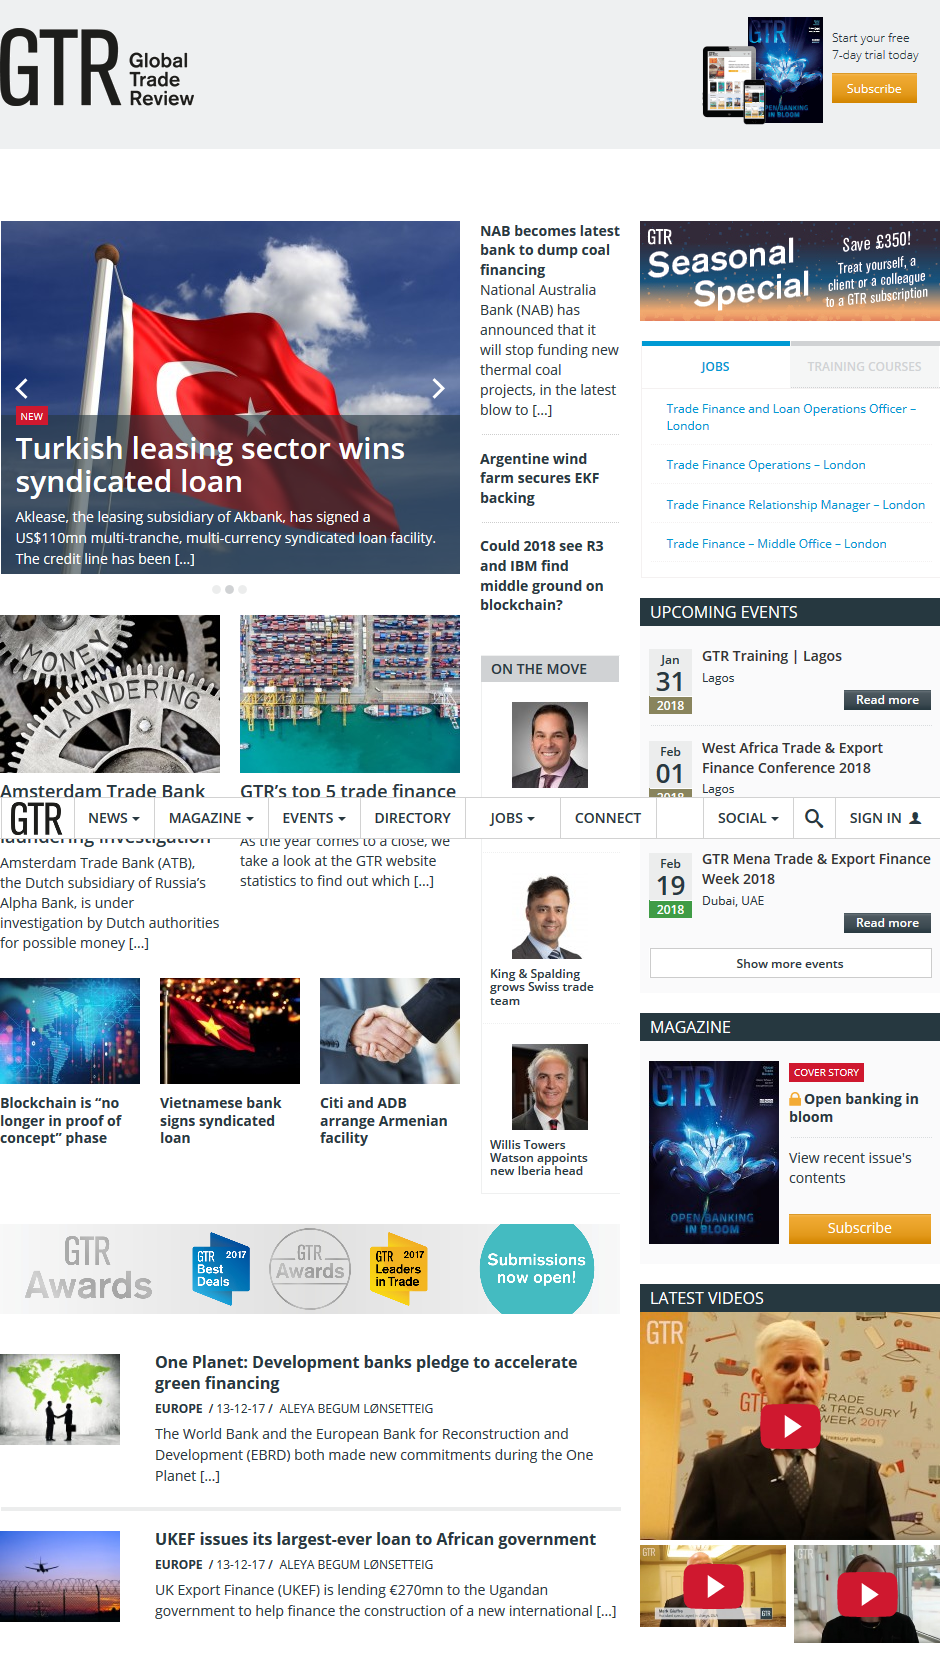 Screenshot-2018-1-4 Global Trade Review (GTR) Trade finance news, publications and events.png